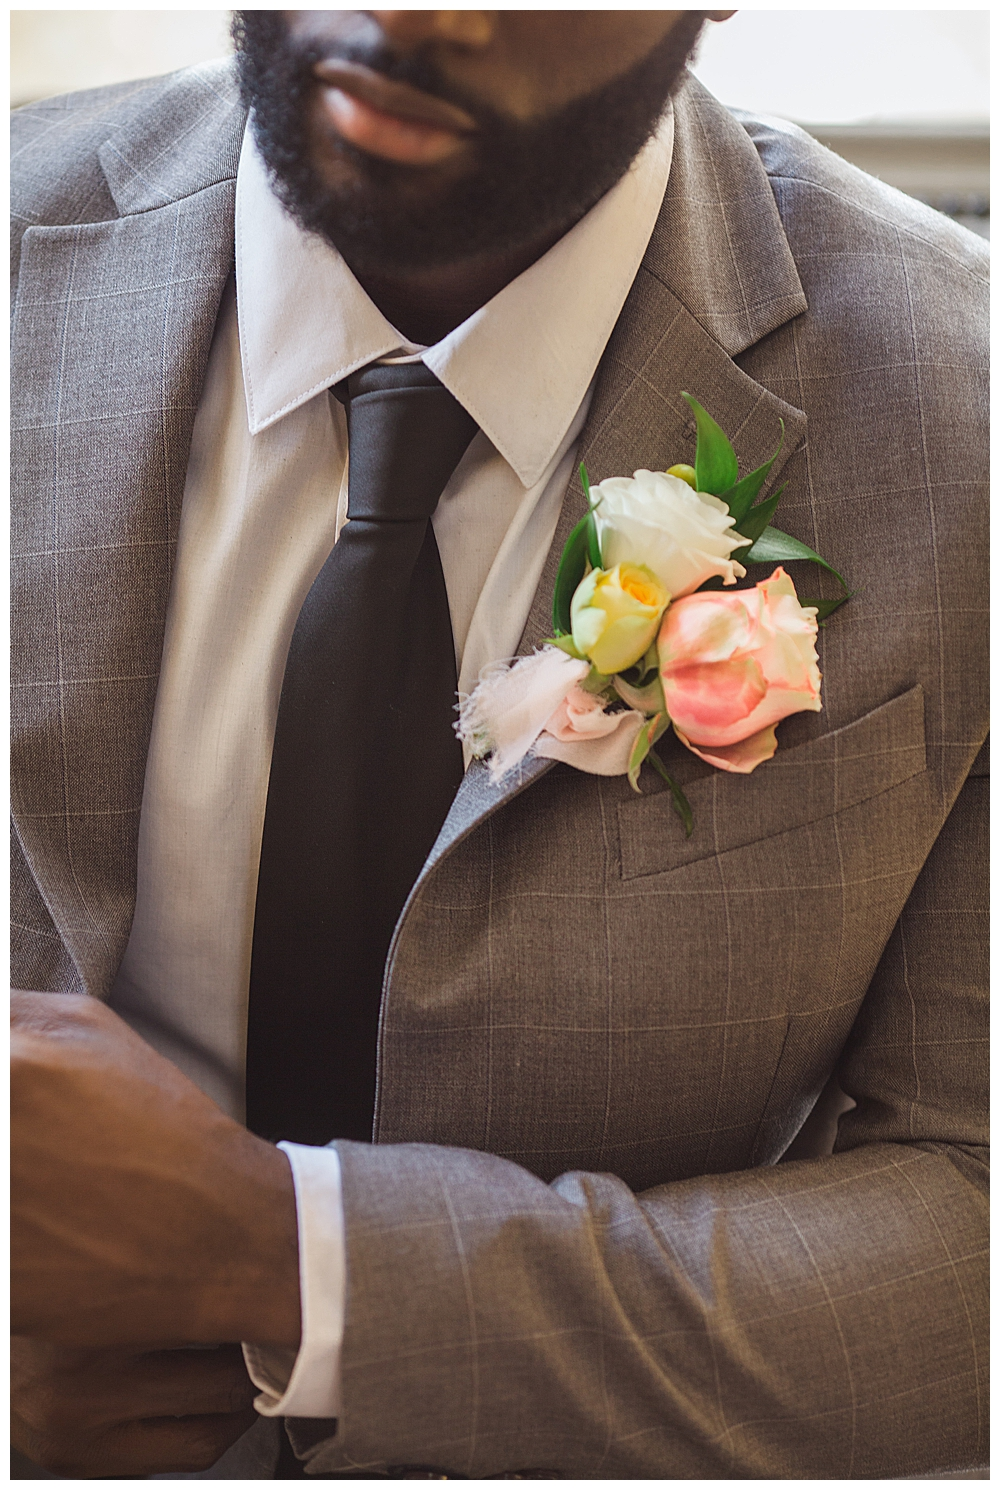 rose-boutonniere-with-gray-suit